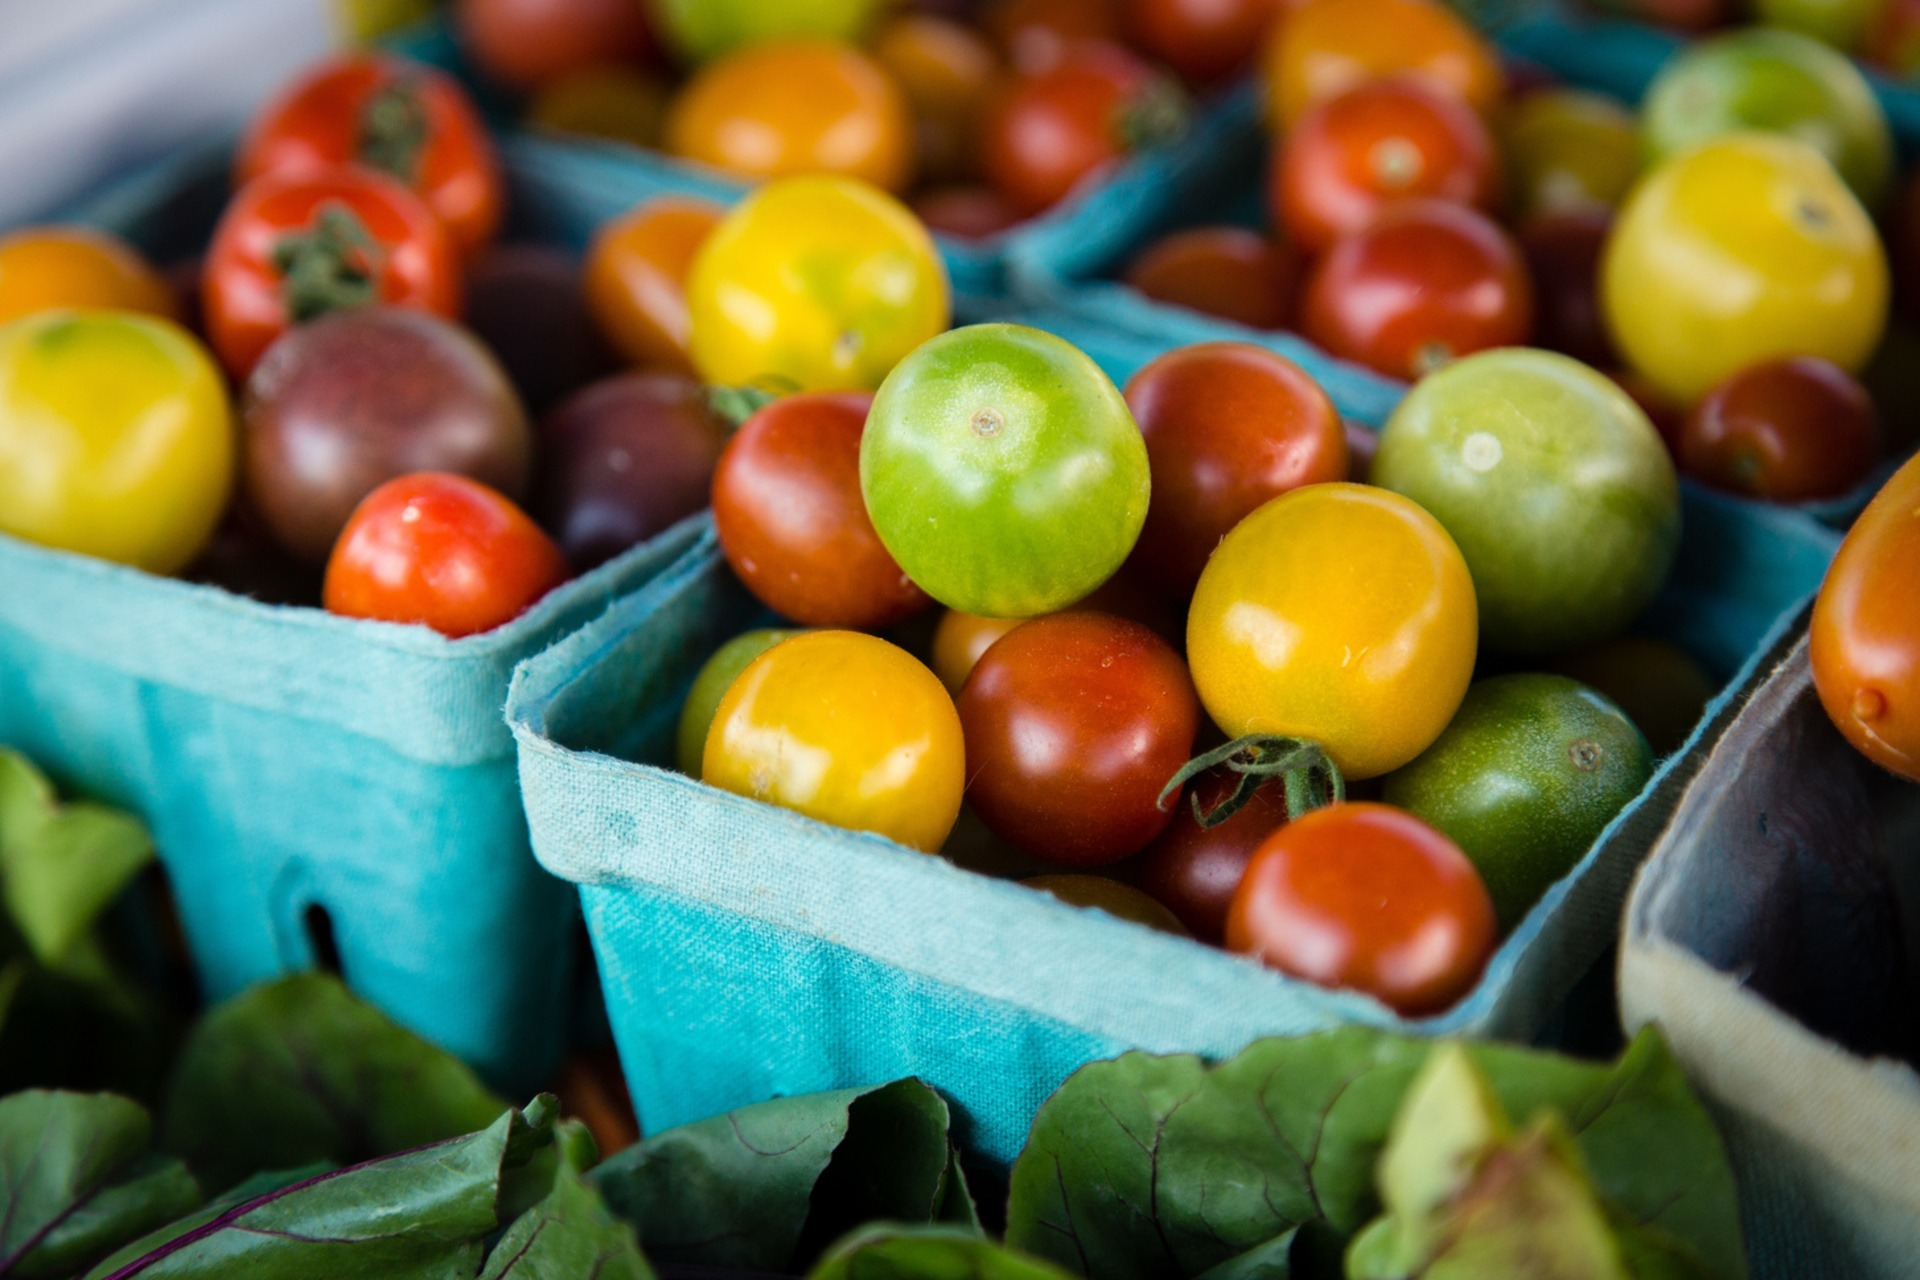 heirloom cherry tomatoes in crates